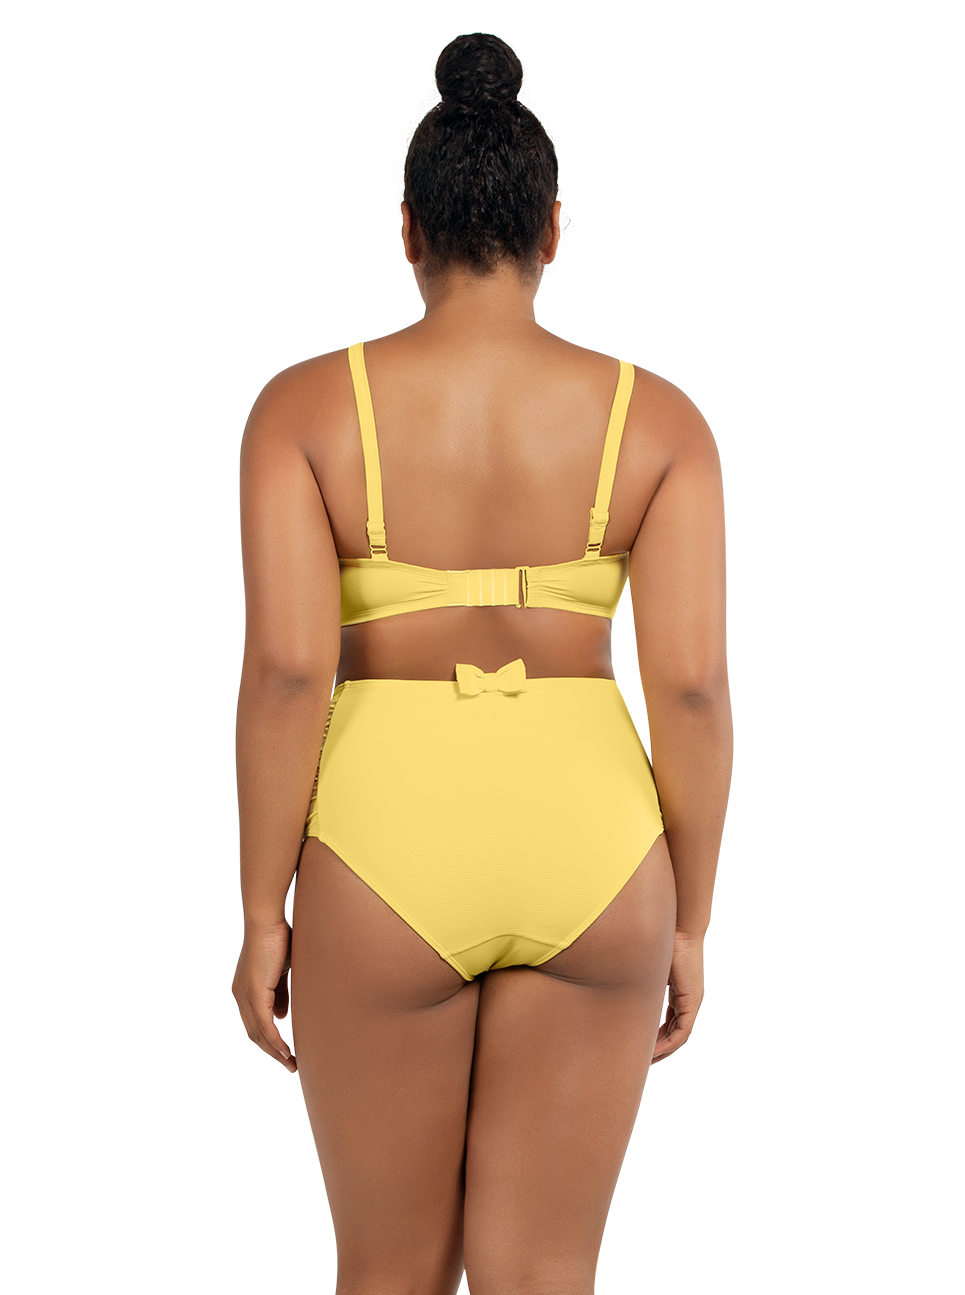 PARFAIT Vivien BalconetteBikiniTopS8162 HighwaistedBottomS8165 LemonDrop Back - Vivien Highwaisted Bottom Lemon Drop S8165